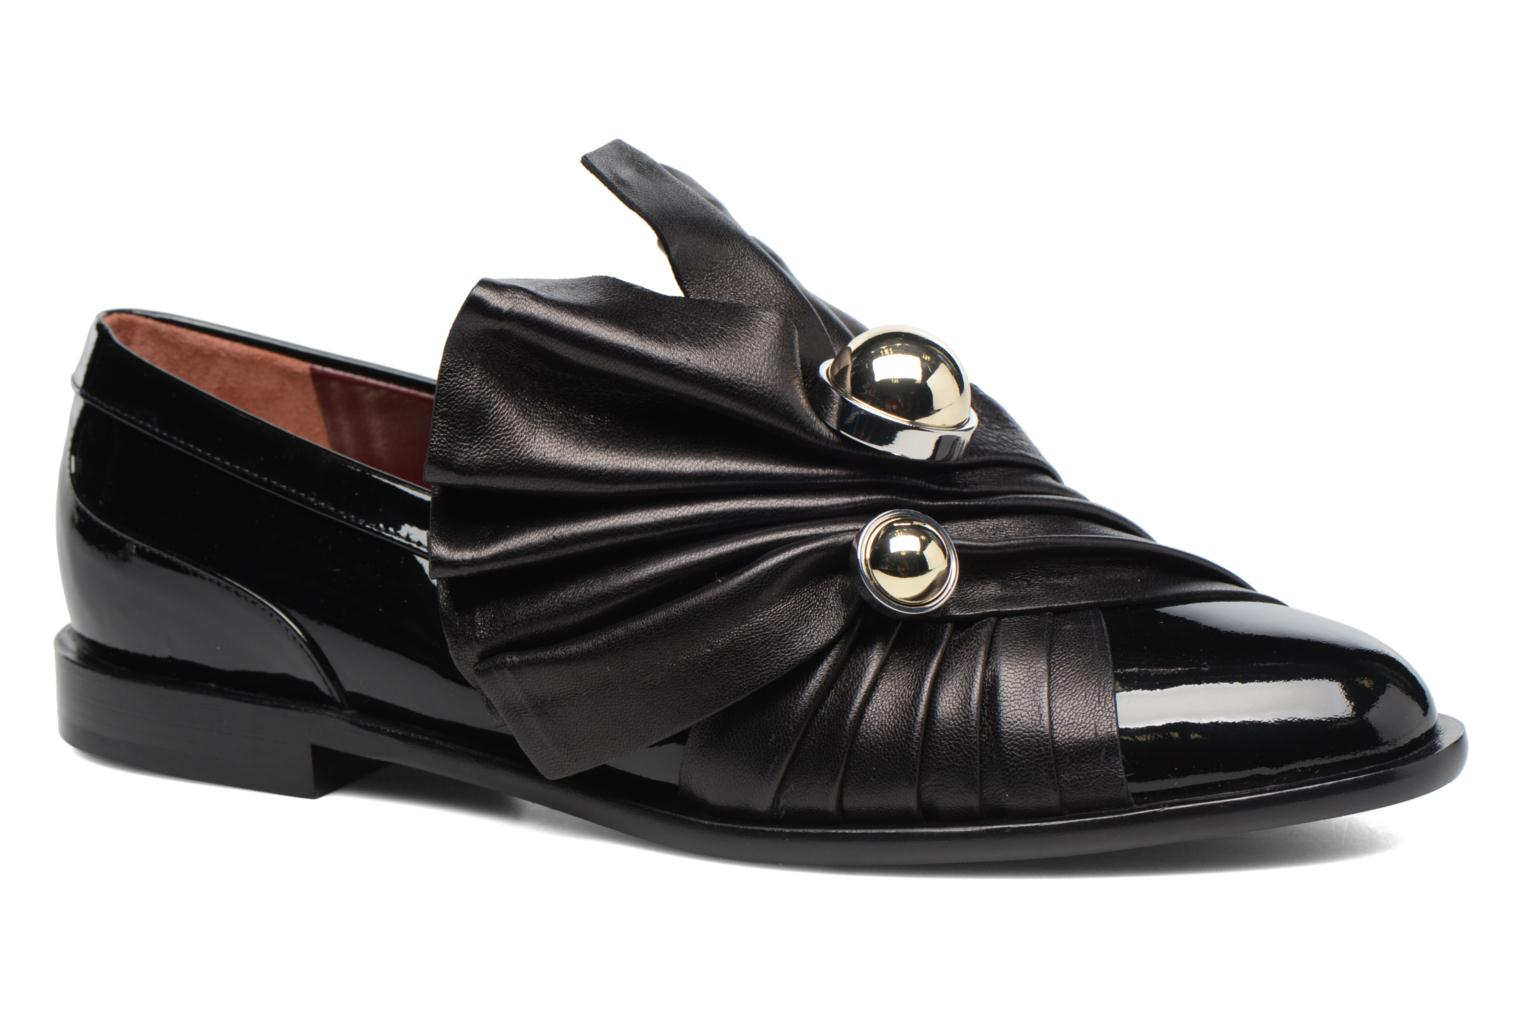 Marques Chaussure luxe femme G.H. Bass femme Weejun WMN Penny Slide 000 Black Leather